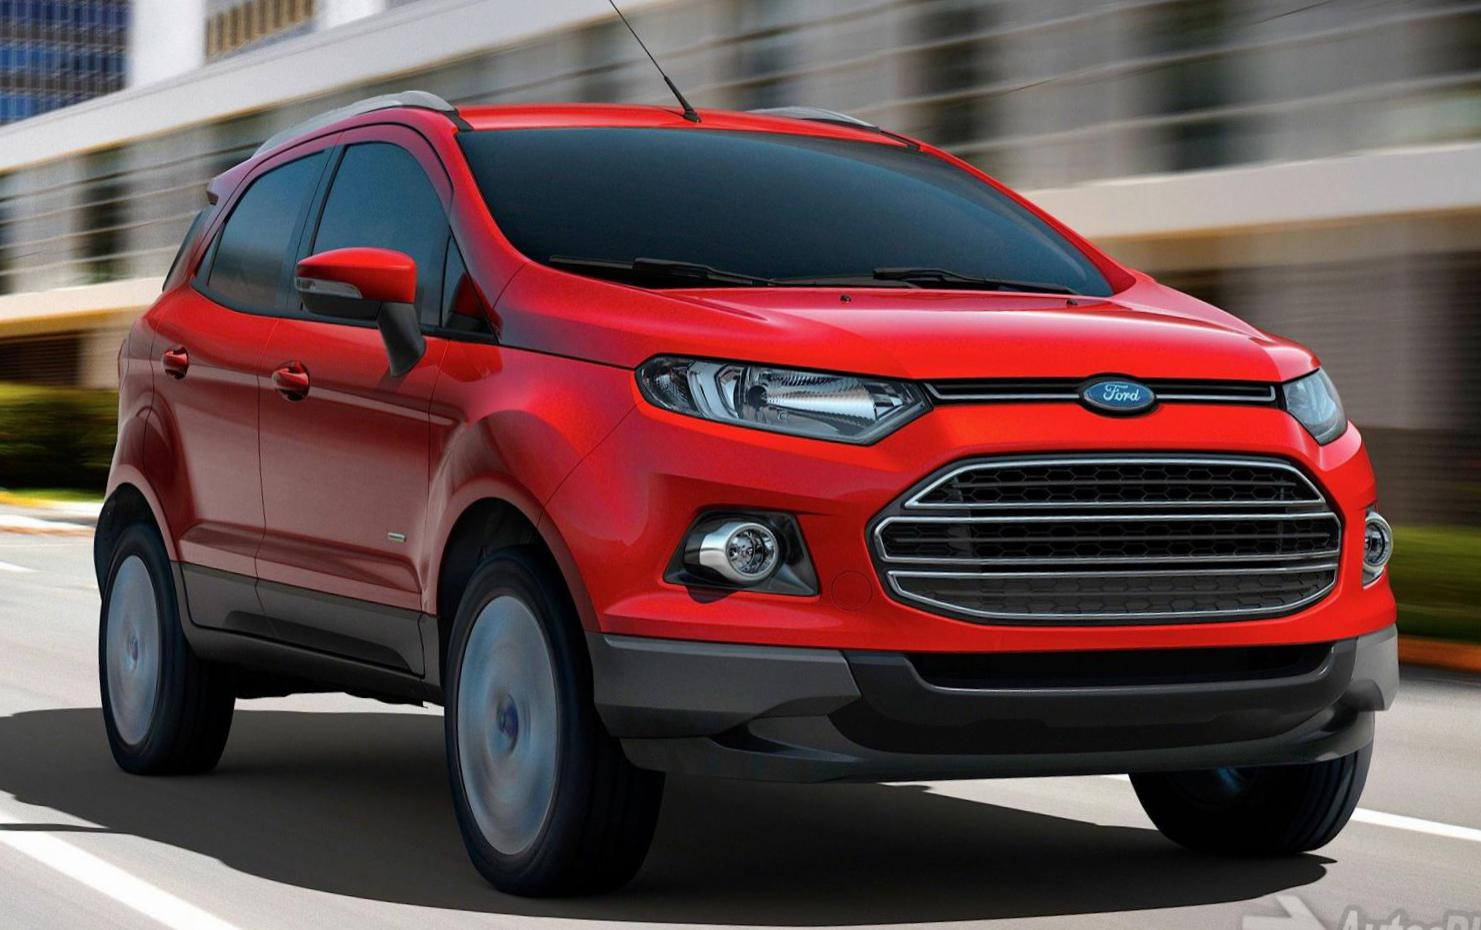 ford ecosport dimensions awesome both the cars have the best looks u the best dimensions for. Black Bedroom Furniture Sets. Home Design Ideas